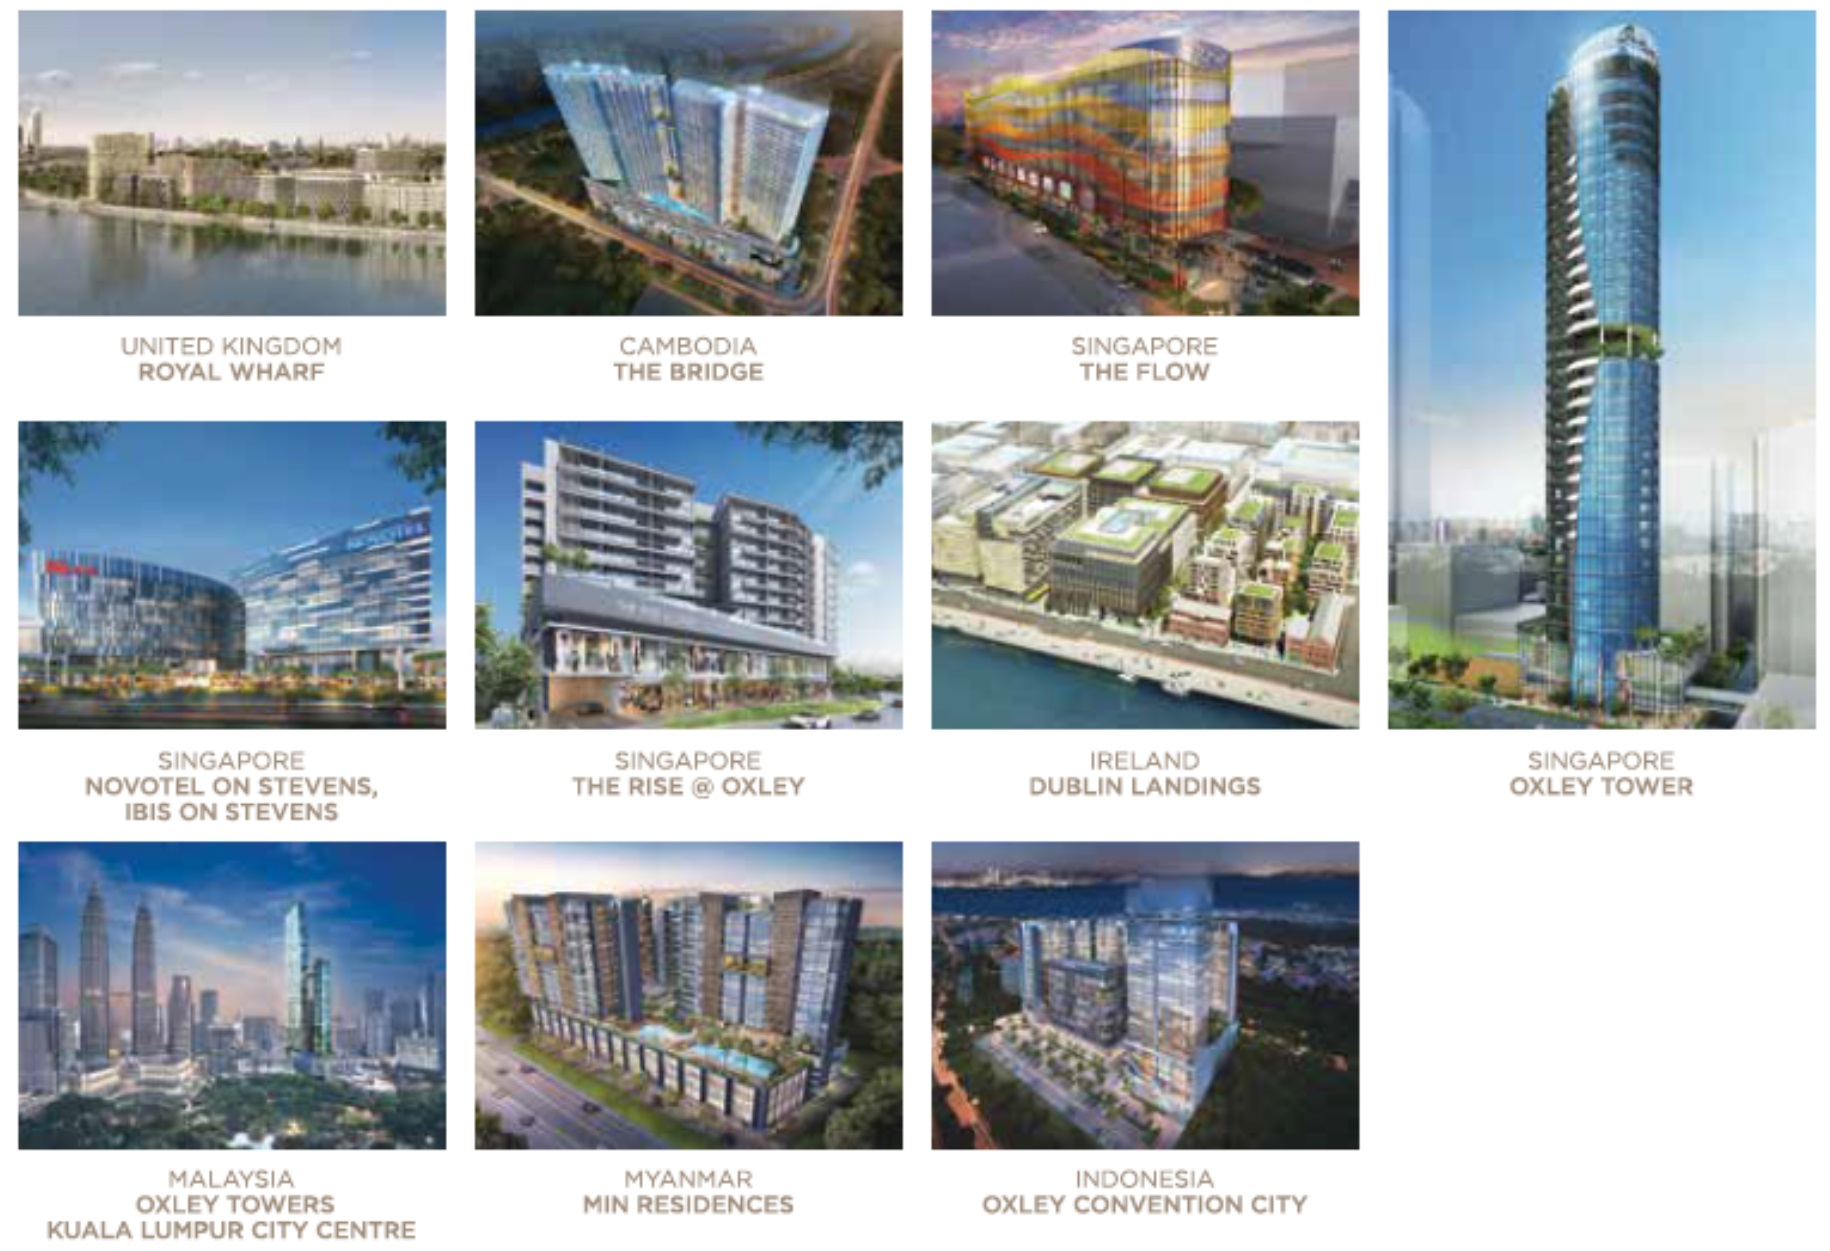 Oxley Towers KLCC Office Developer Profile